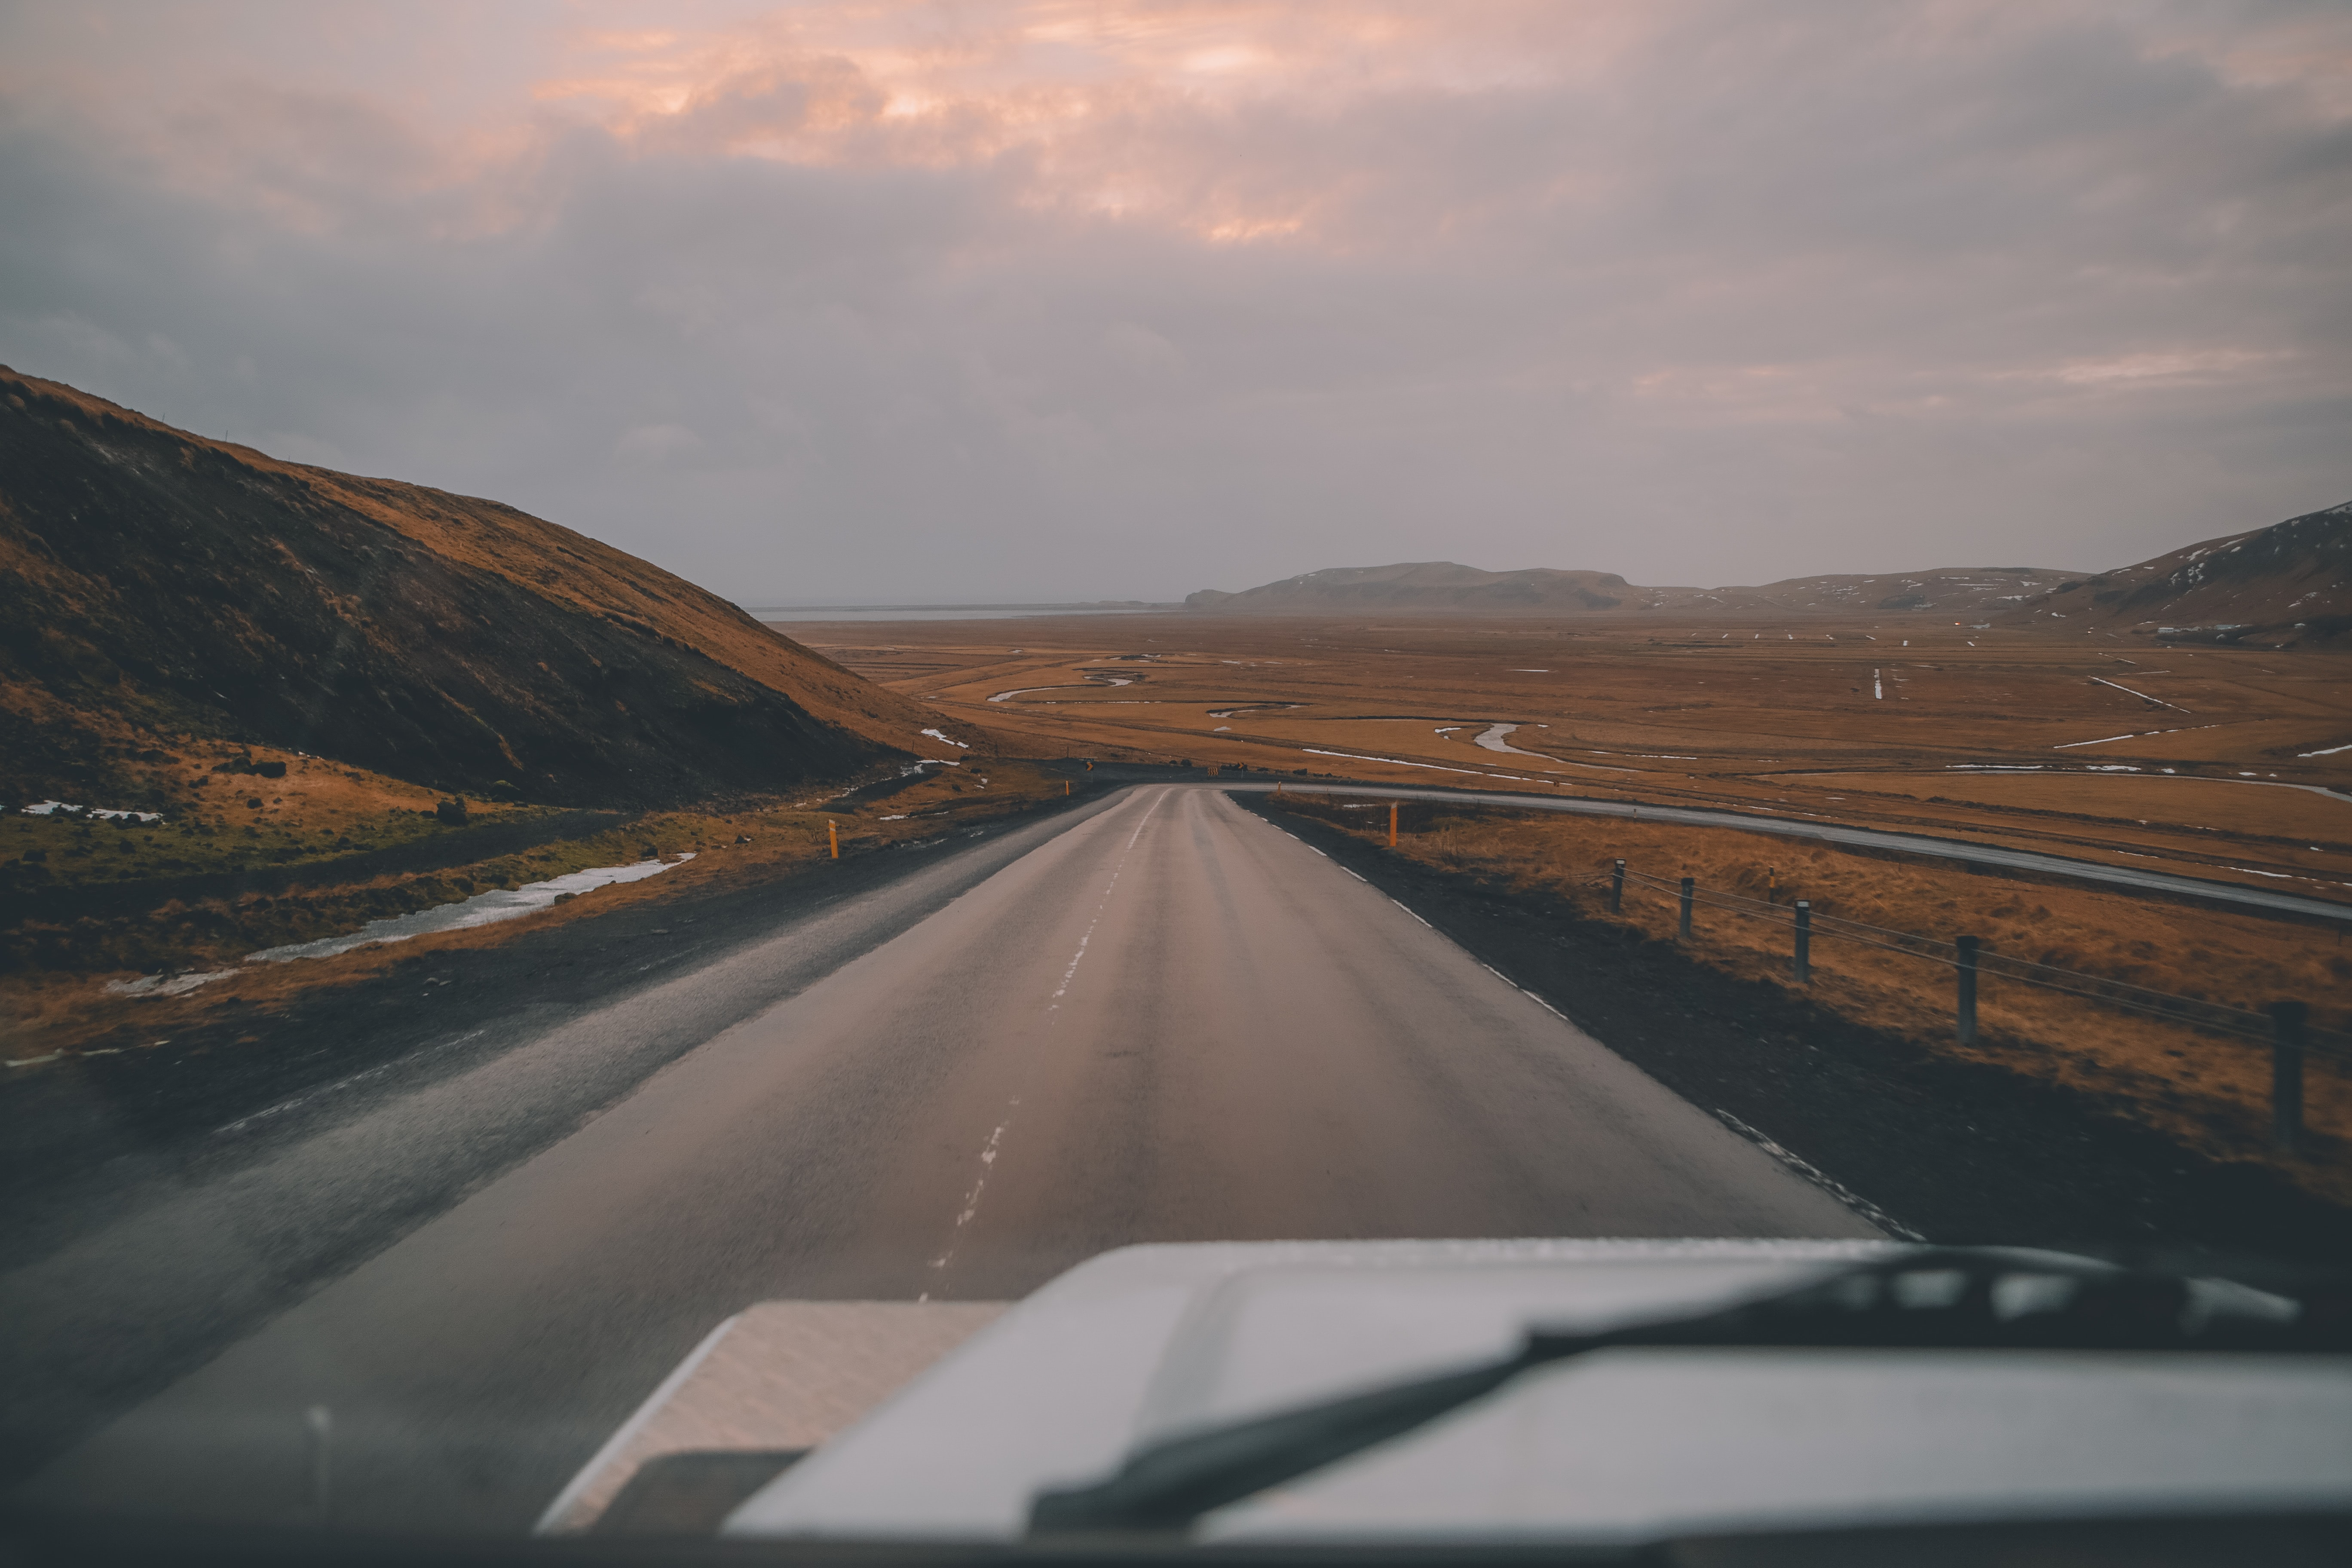 The view from the windshield on an empty road through cold Icelandic plains